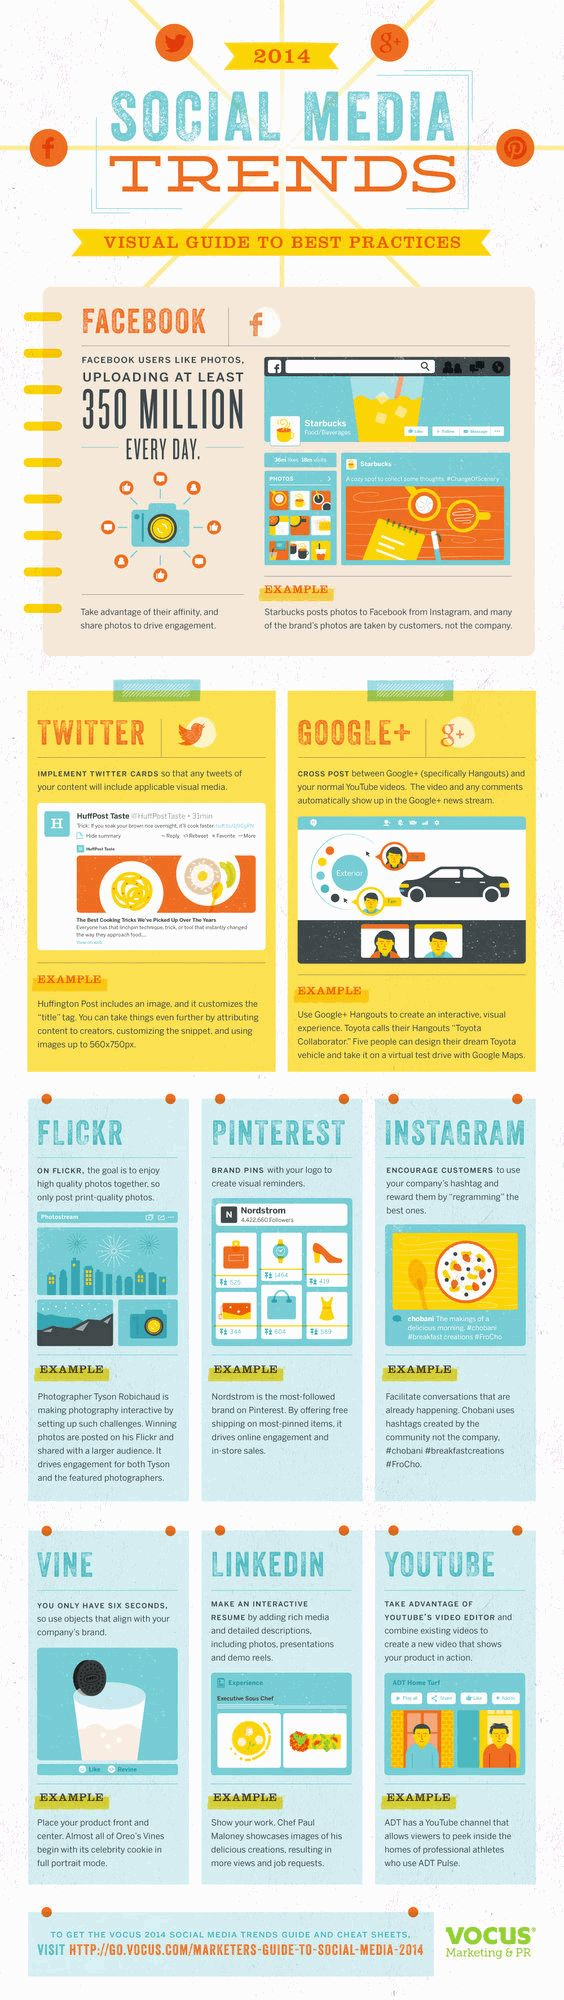 Social Media Marketing Tips and Tricks for Facebook, Twitter, Google+, and More